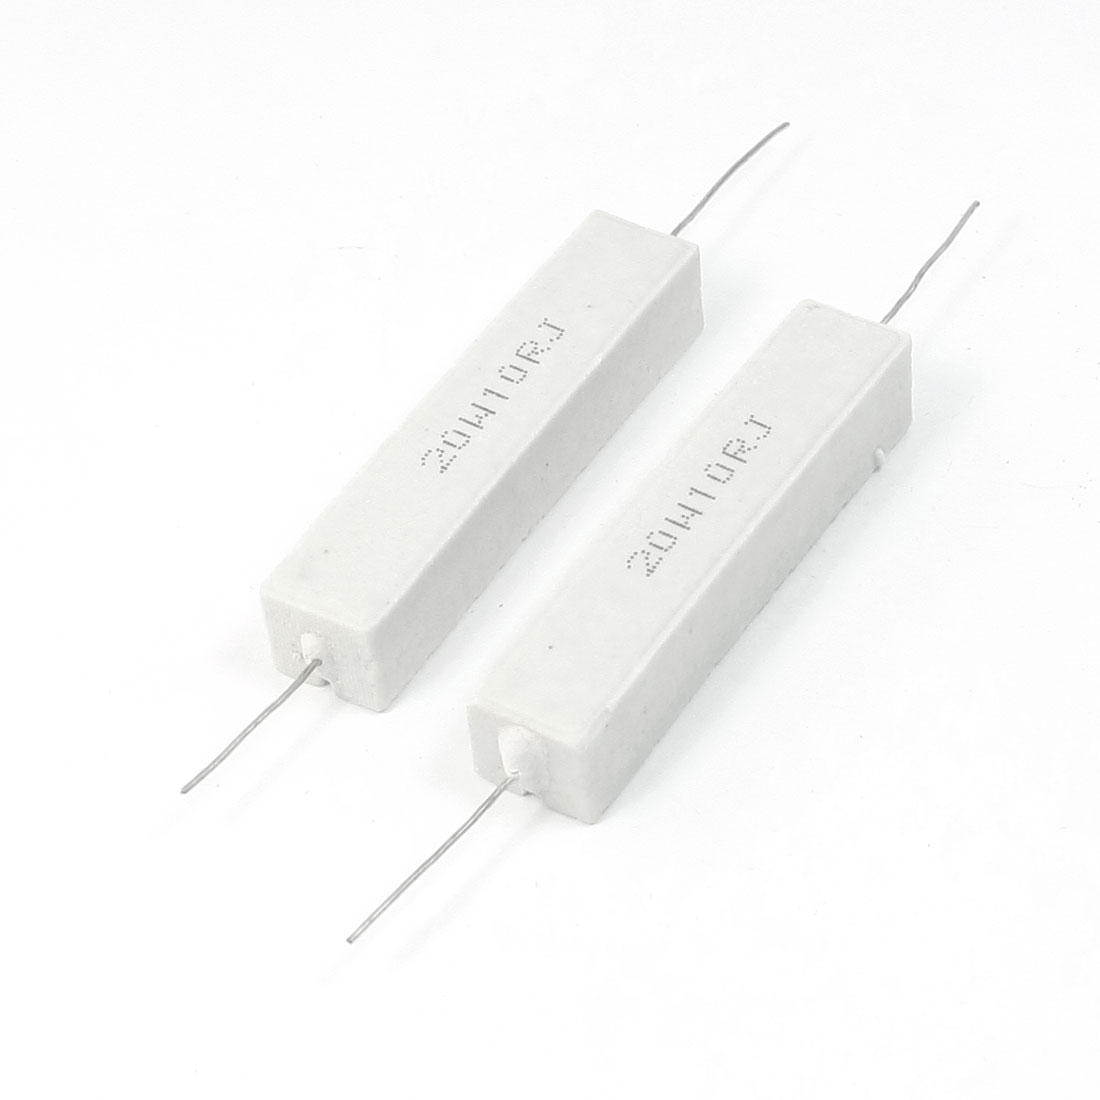 2 Pcs Axial Wirewound Cement Resistors 20W Watt 10 Ohm 5%